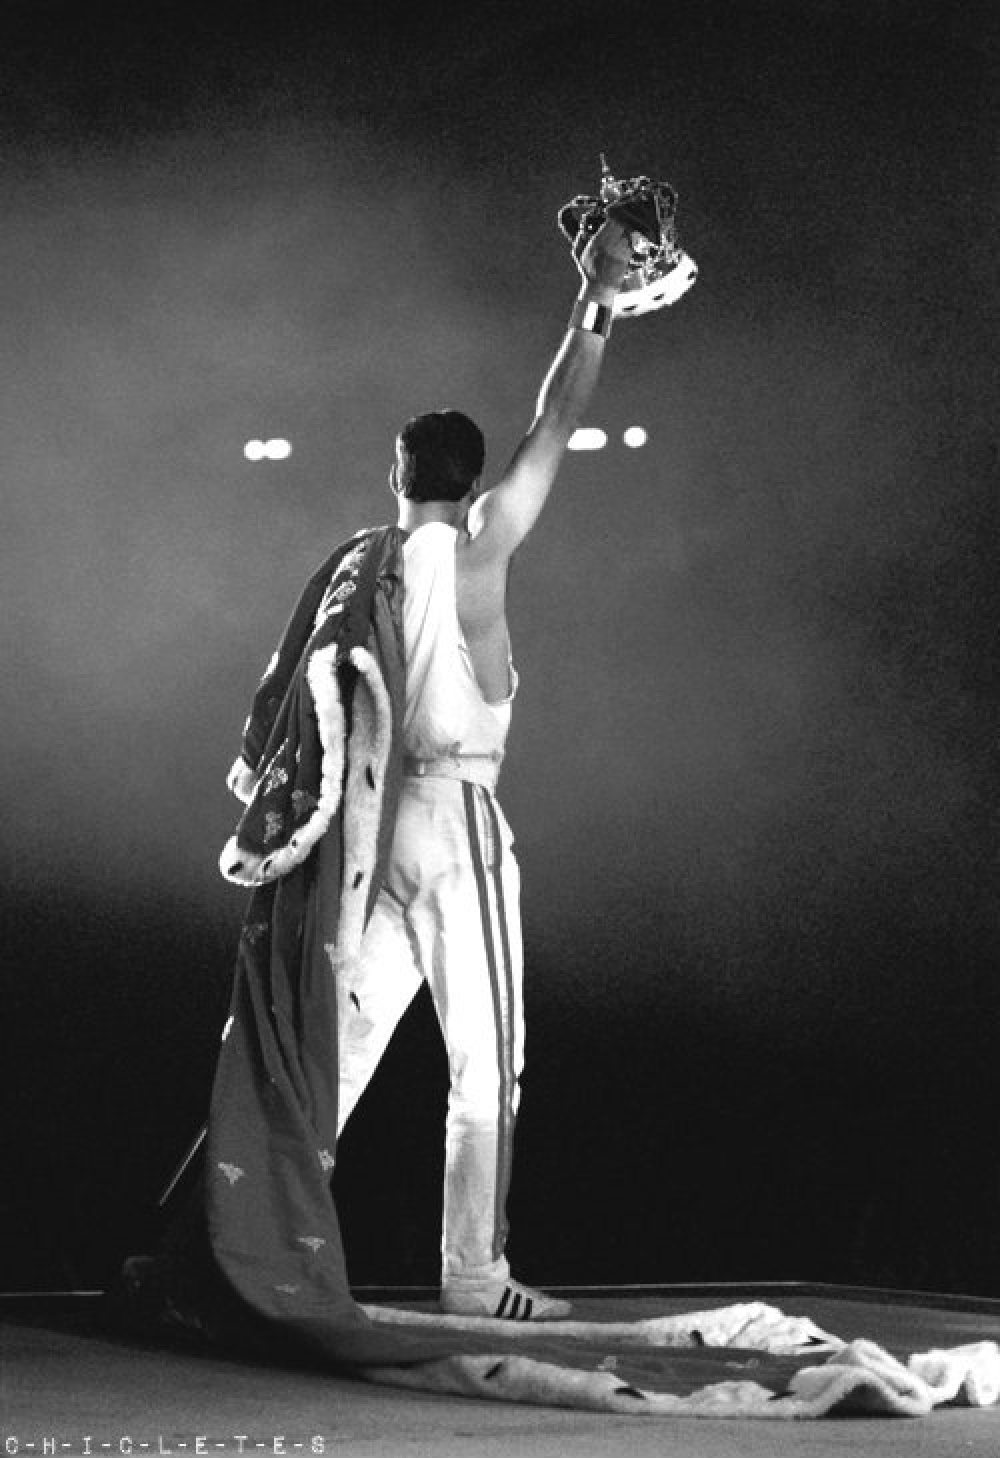 Living of a legend - Freddie Mercury